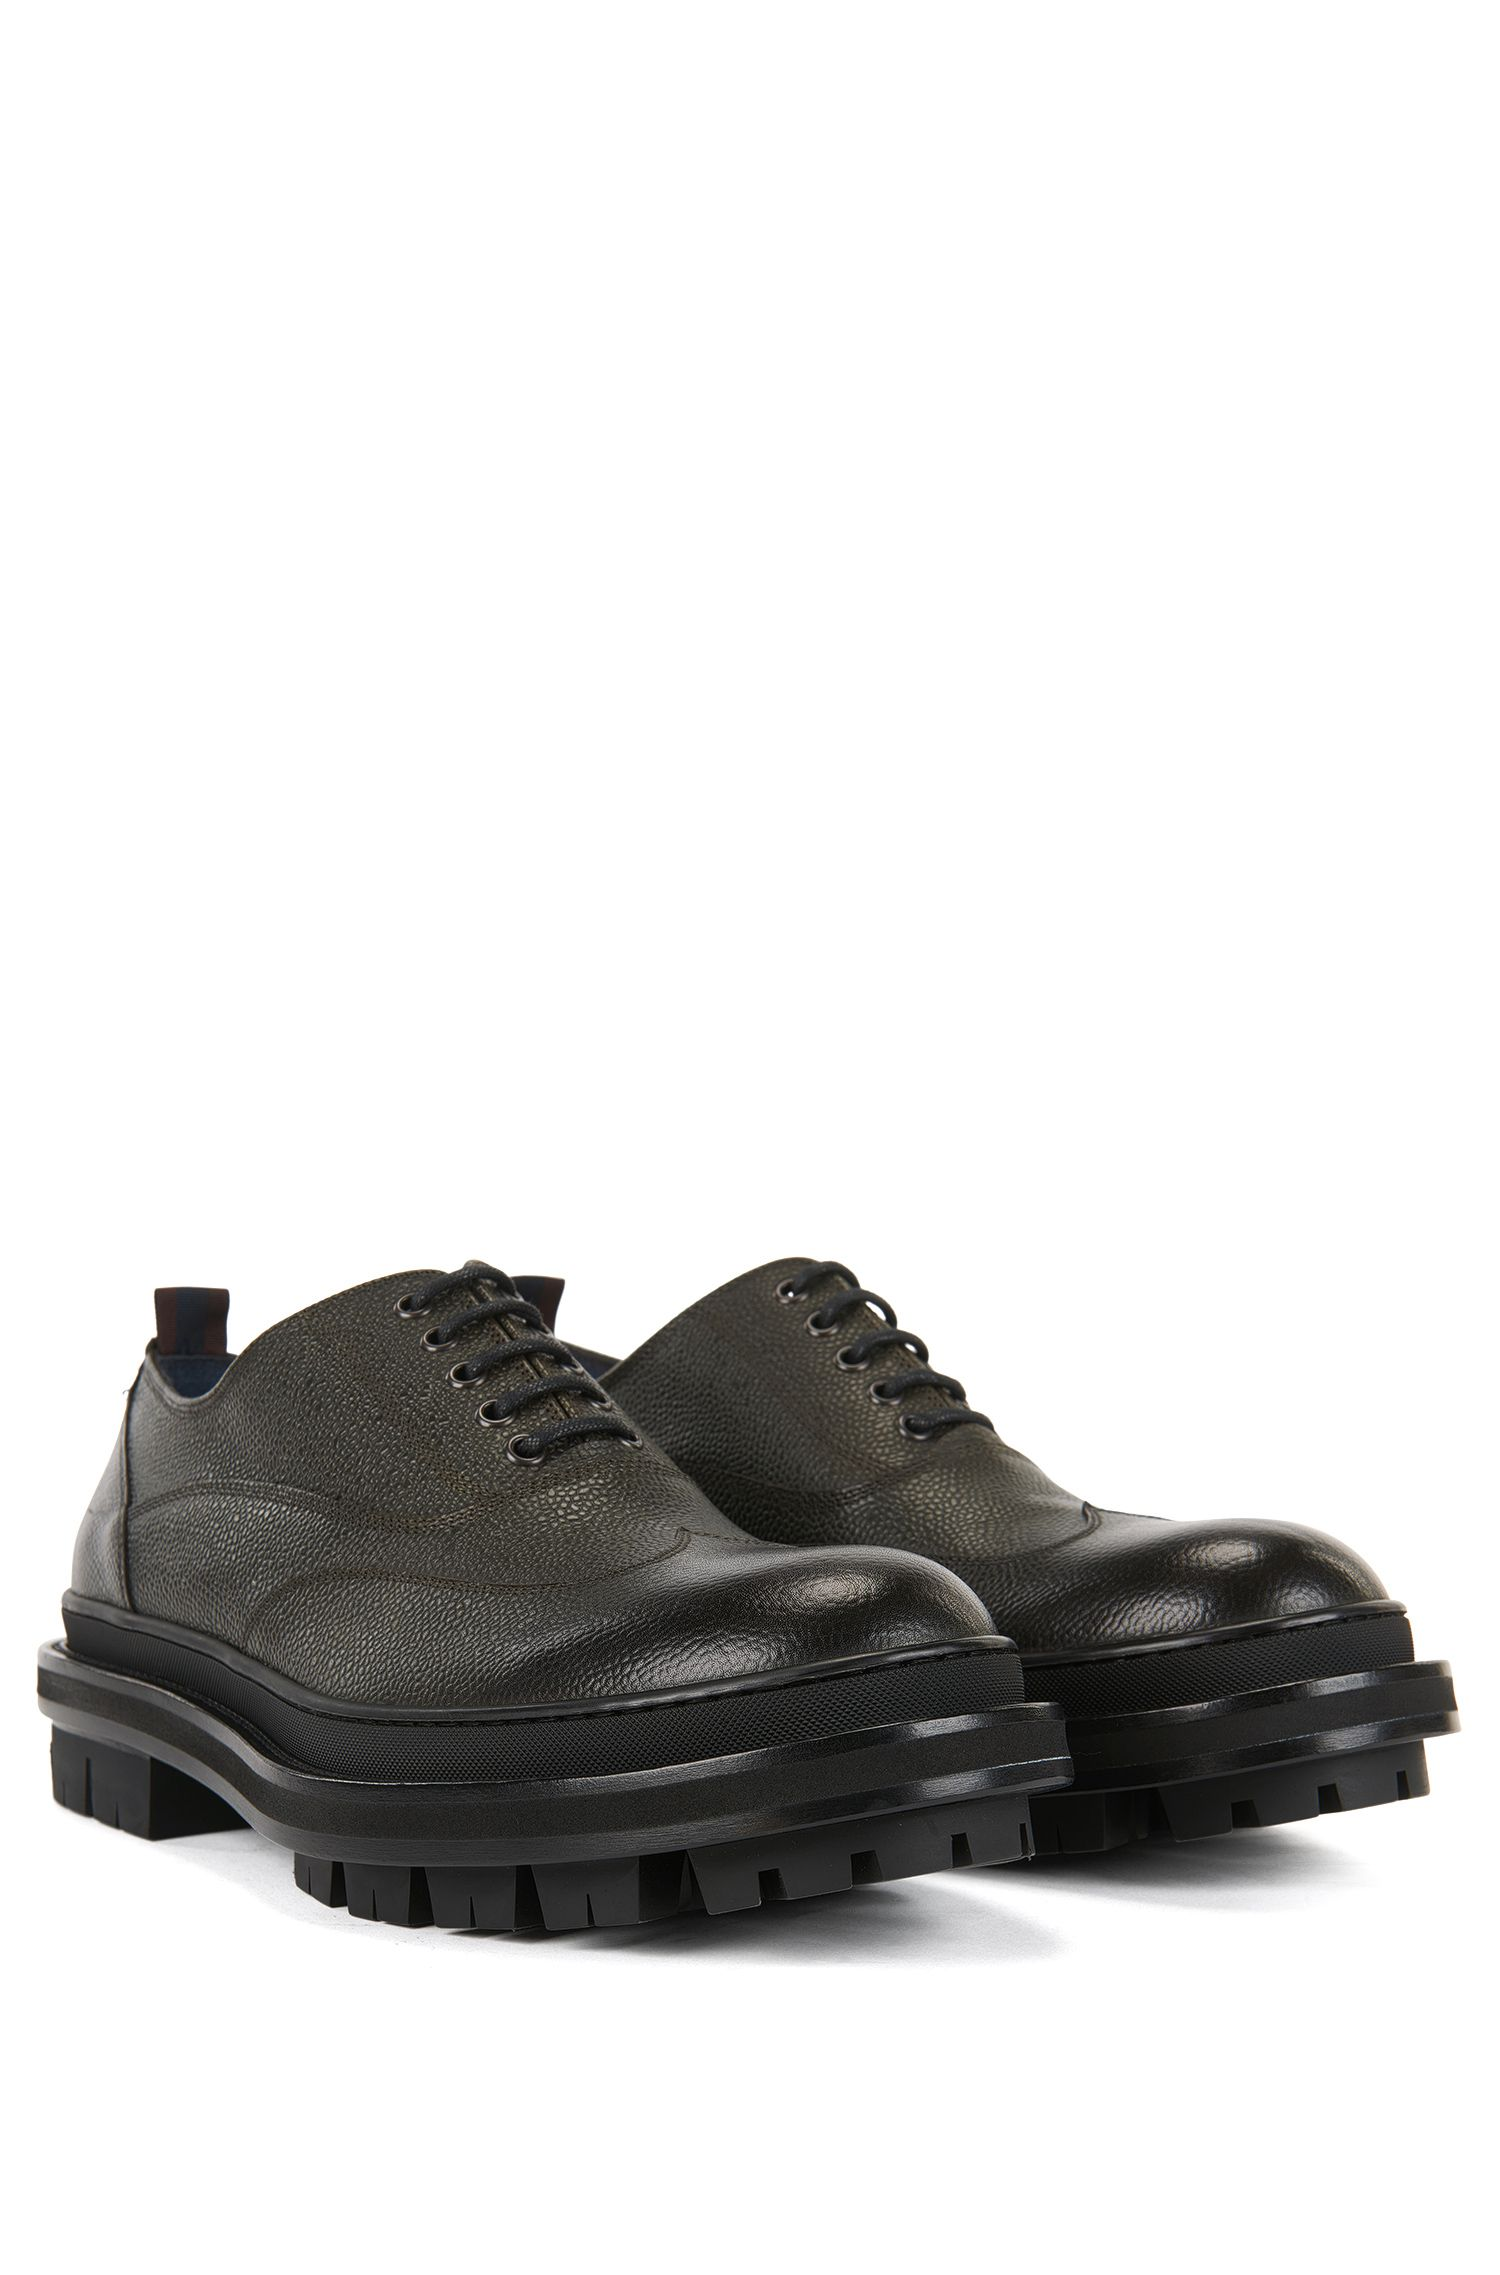 Oxford Shoes in Grained Leather | 'Twist', Dark Green